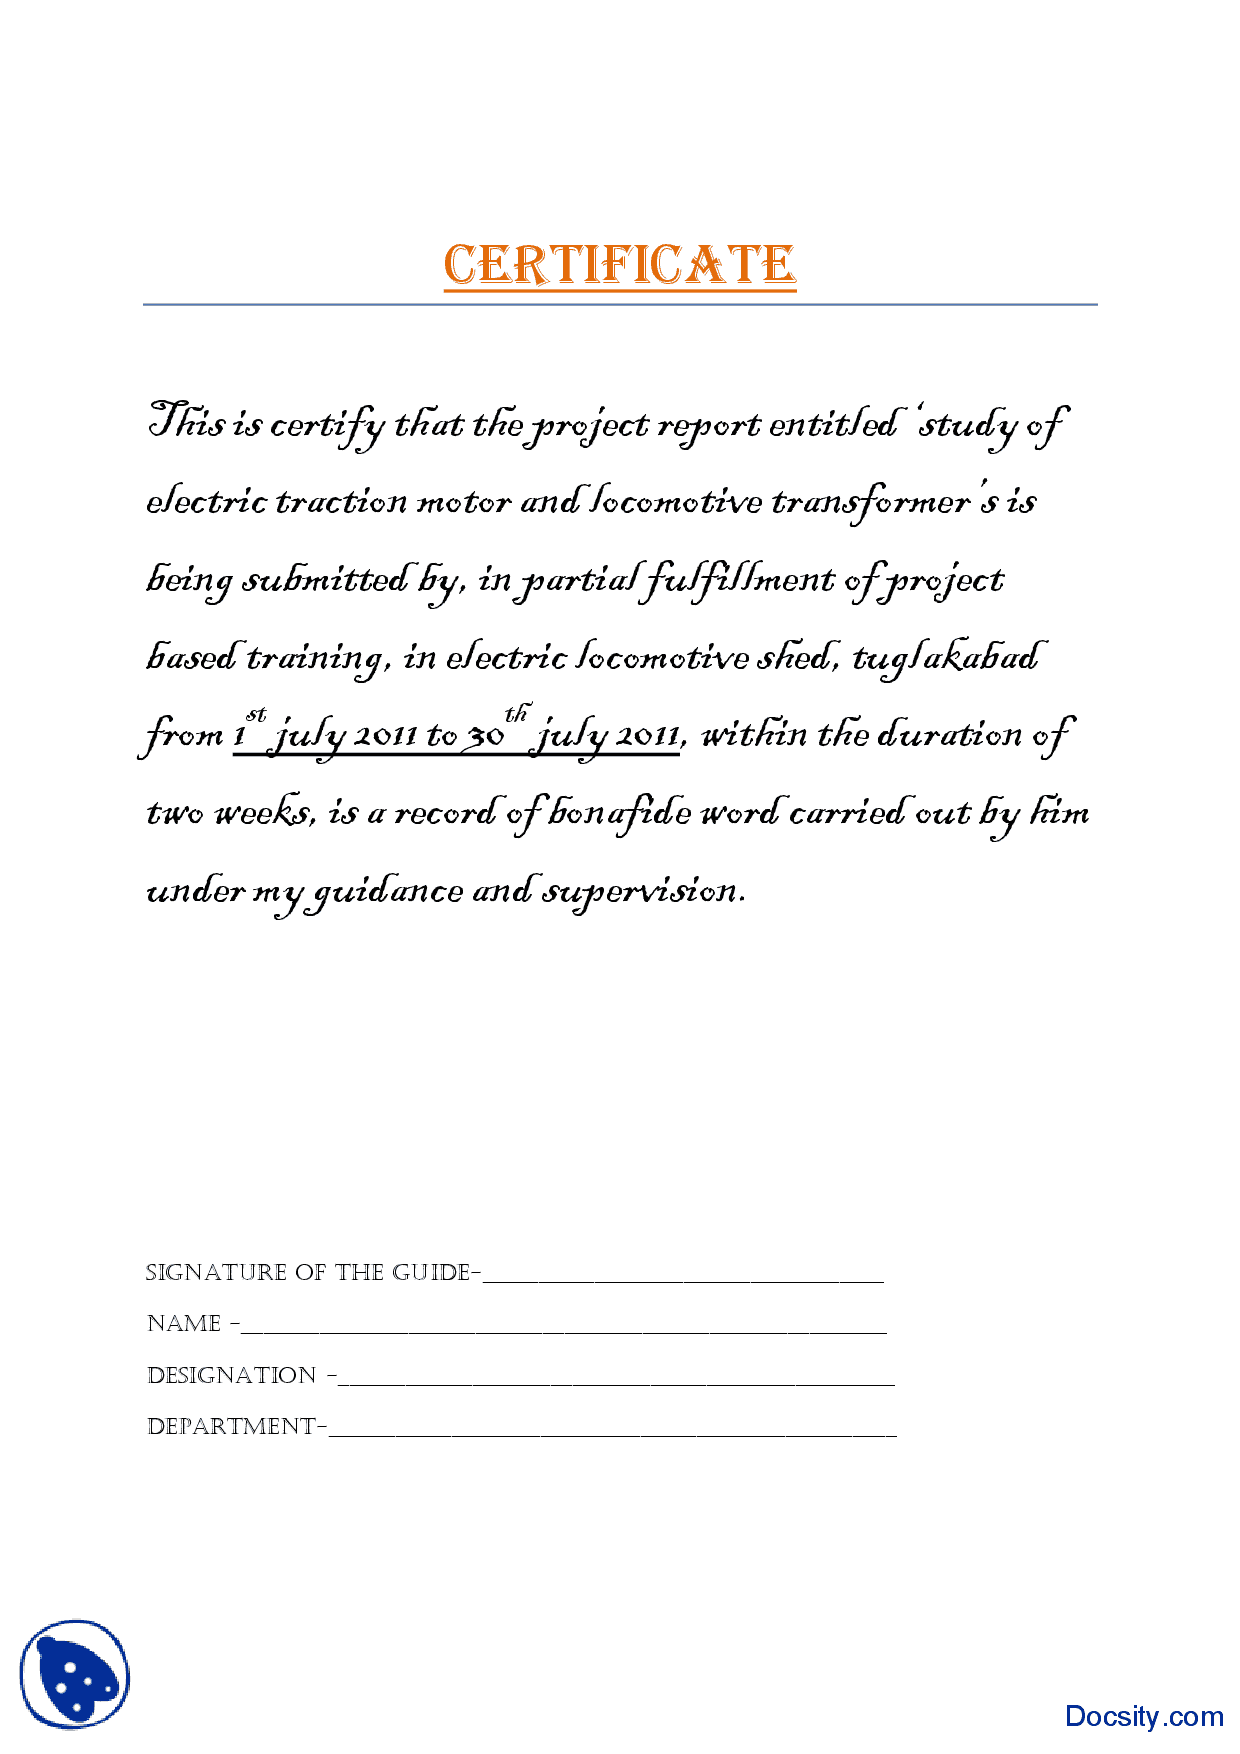 Project Certificate Electrical Engineering and Industries Report